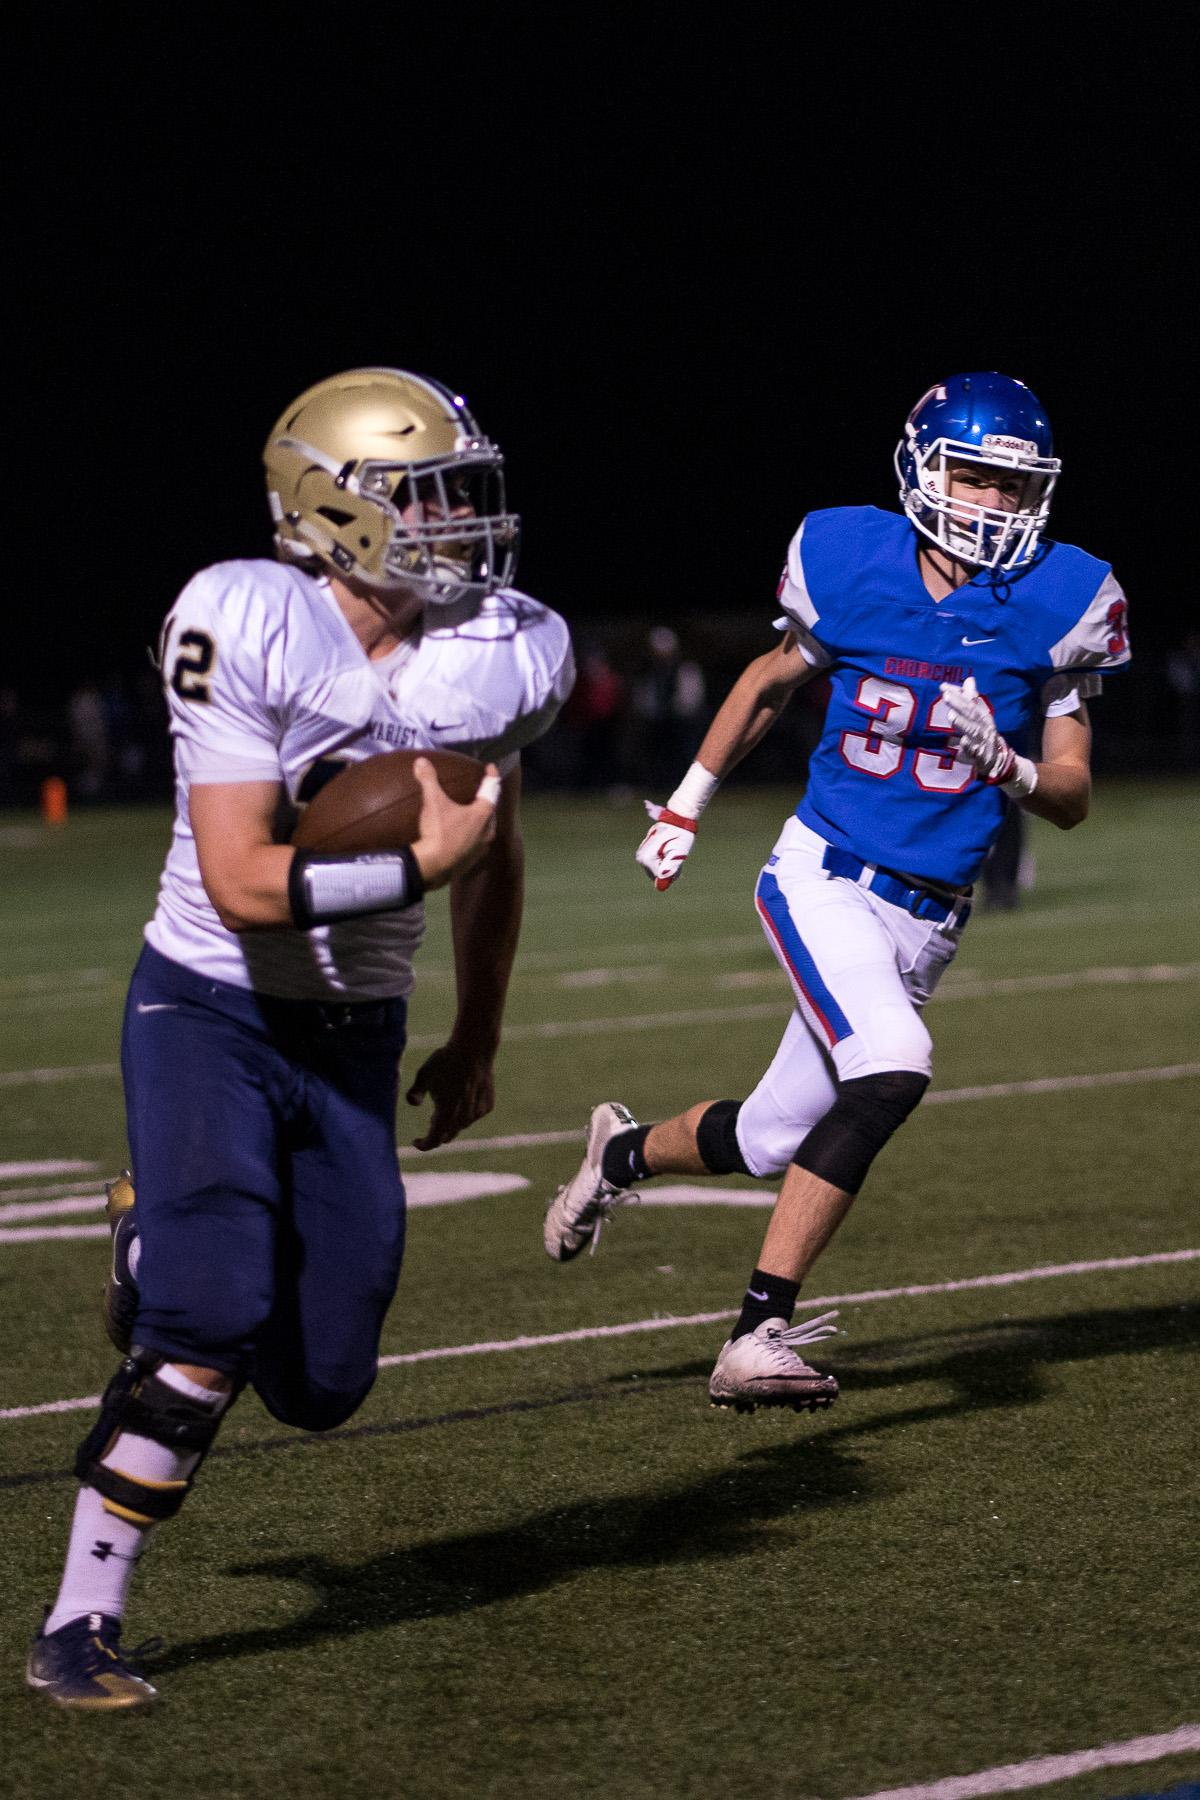 Marist Spartans running back Mitchell Hopkins (#12) runs the ball while being pressured by Churchill's Mitchell Whittier (#33). The Churchill Lancers defeated the Marist Catholic Spartans 41 - 20 at Churchill High School on Friday, October 6. Photo by Kit MacAvoy, Oregon News Lab